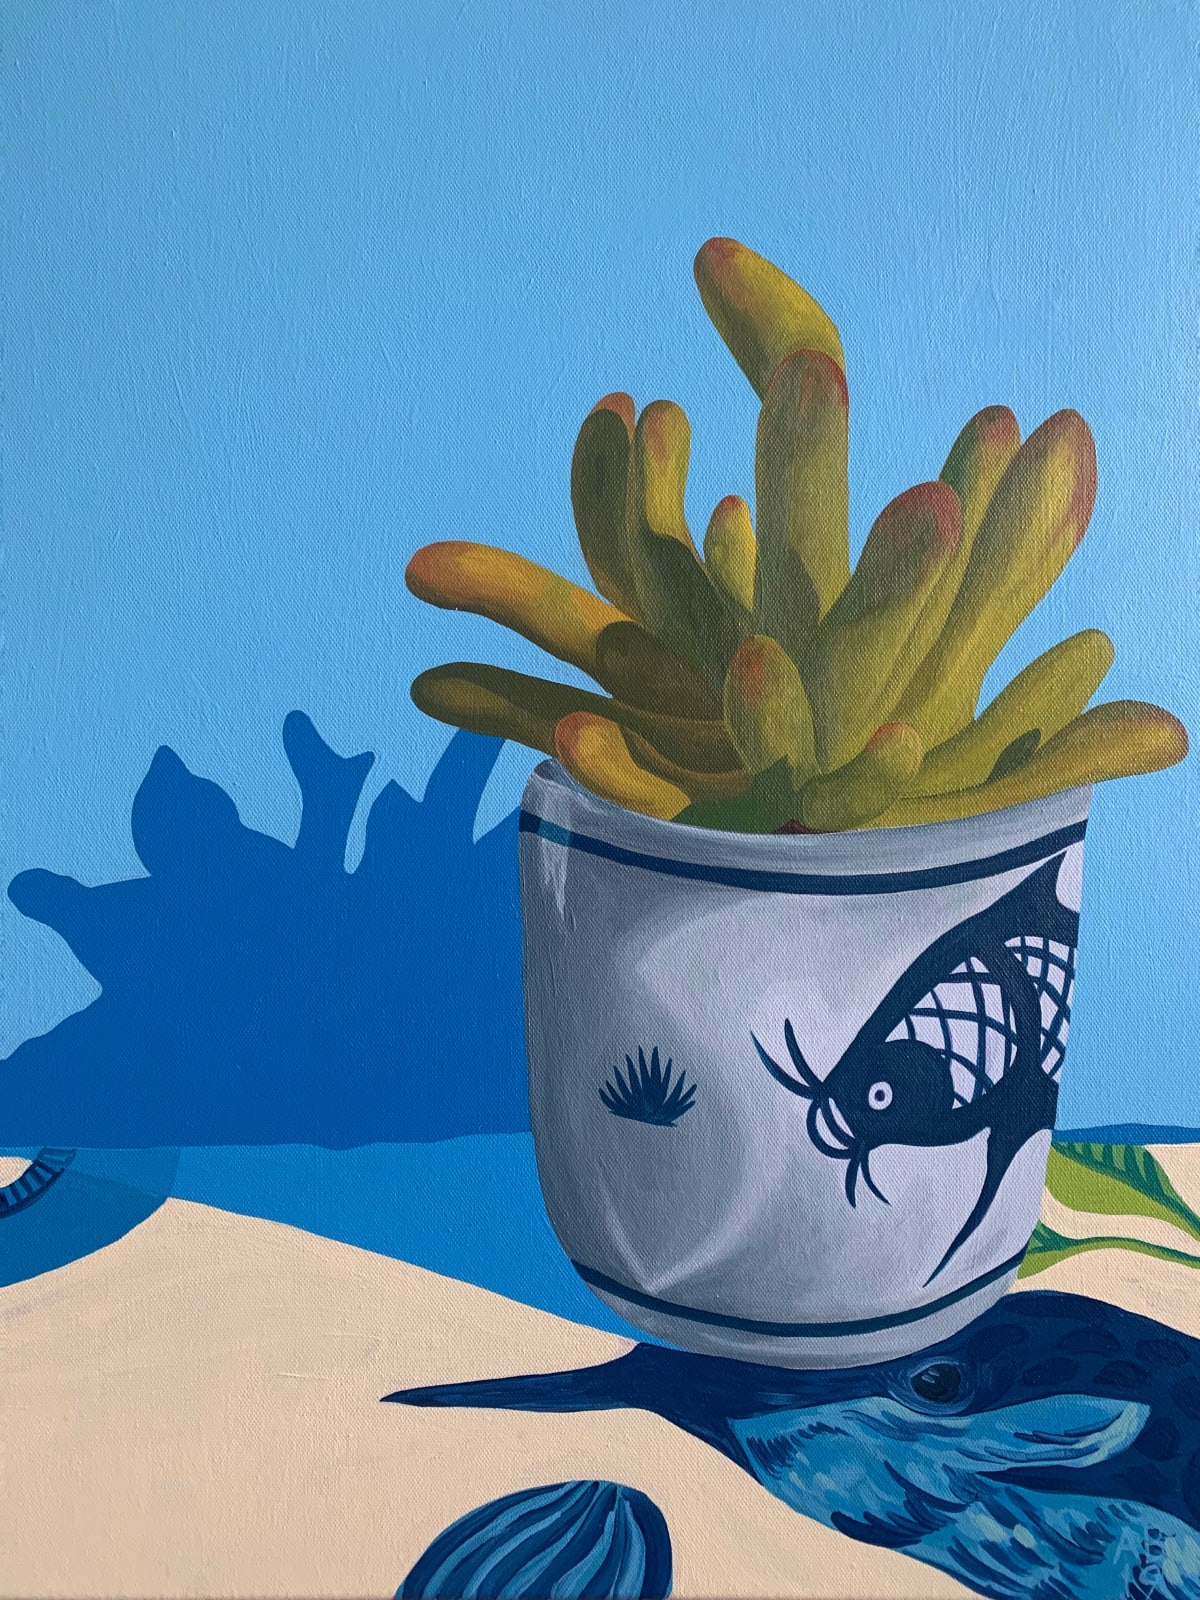 Amy Bultena Bitty Succulent , 2019 Acrylic on Canvas 45.7 x 61 cm 18 x 24 in